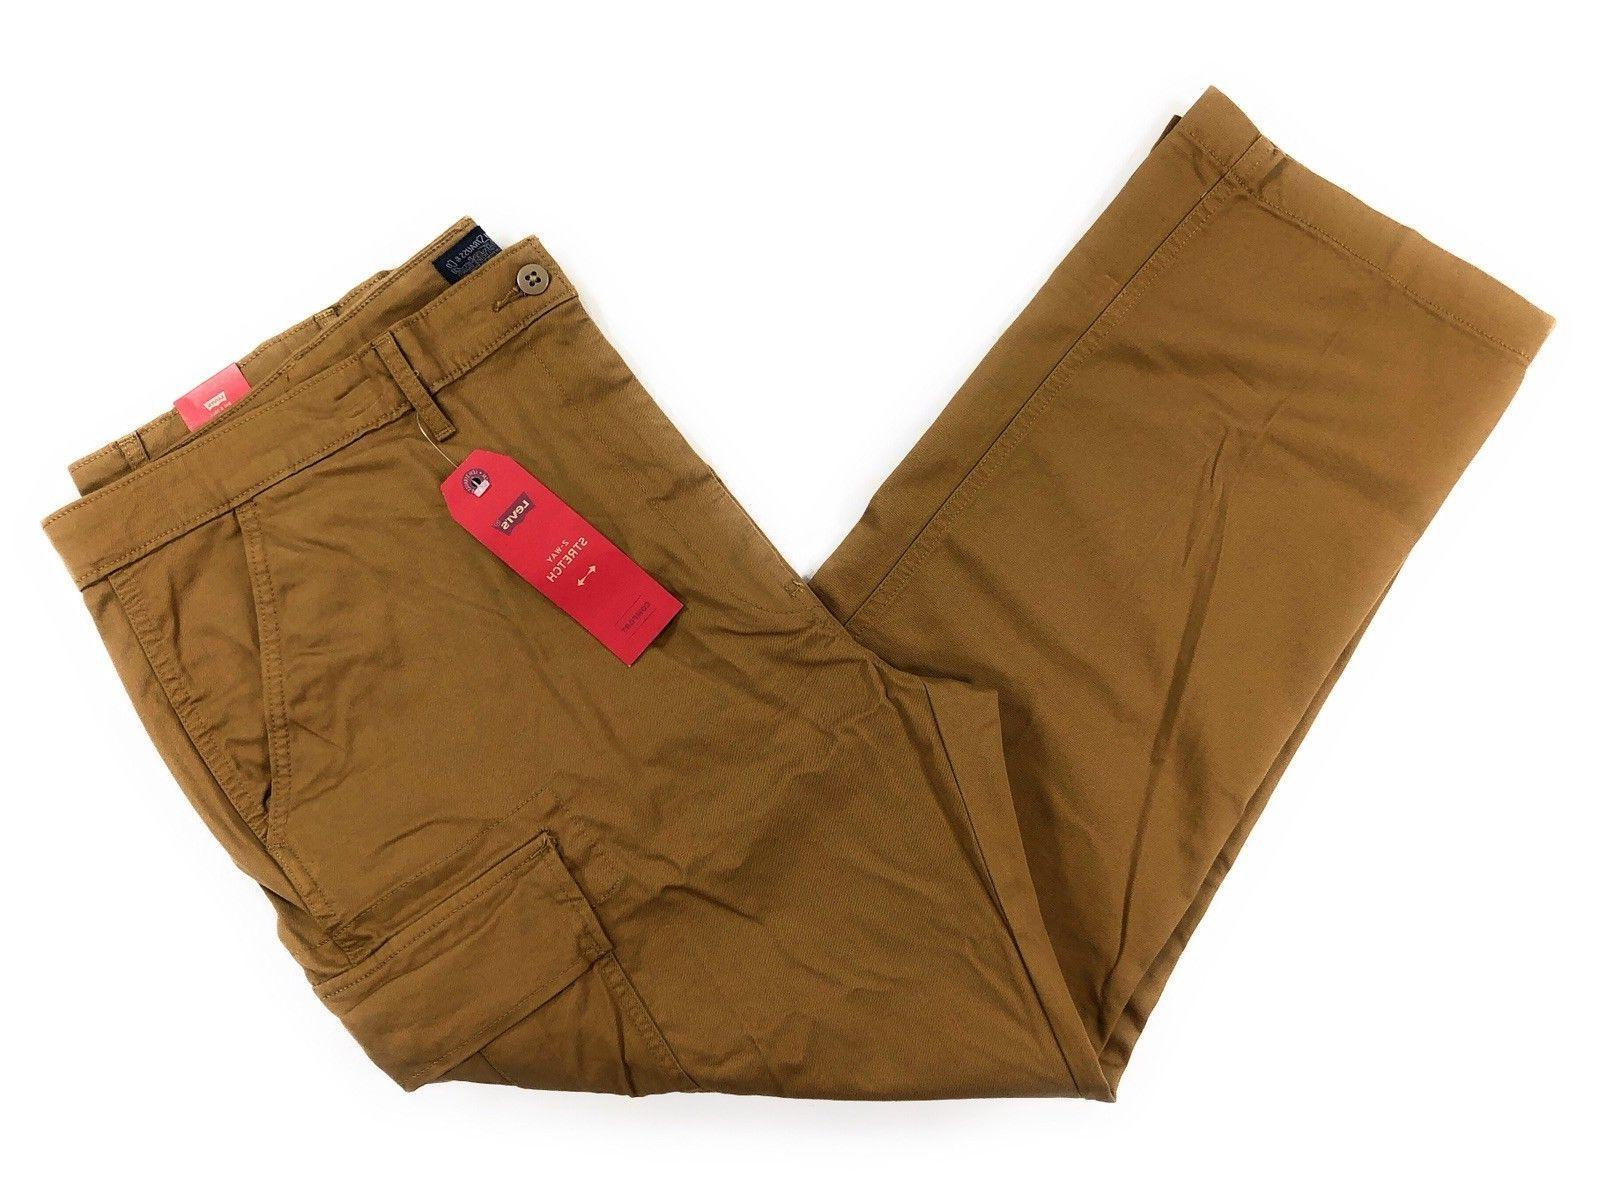 PANTS 541 Size 34x34 Athletic Fit Caraway Brown